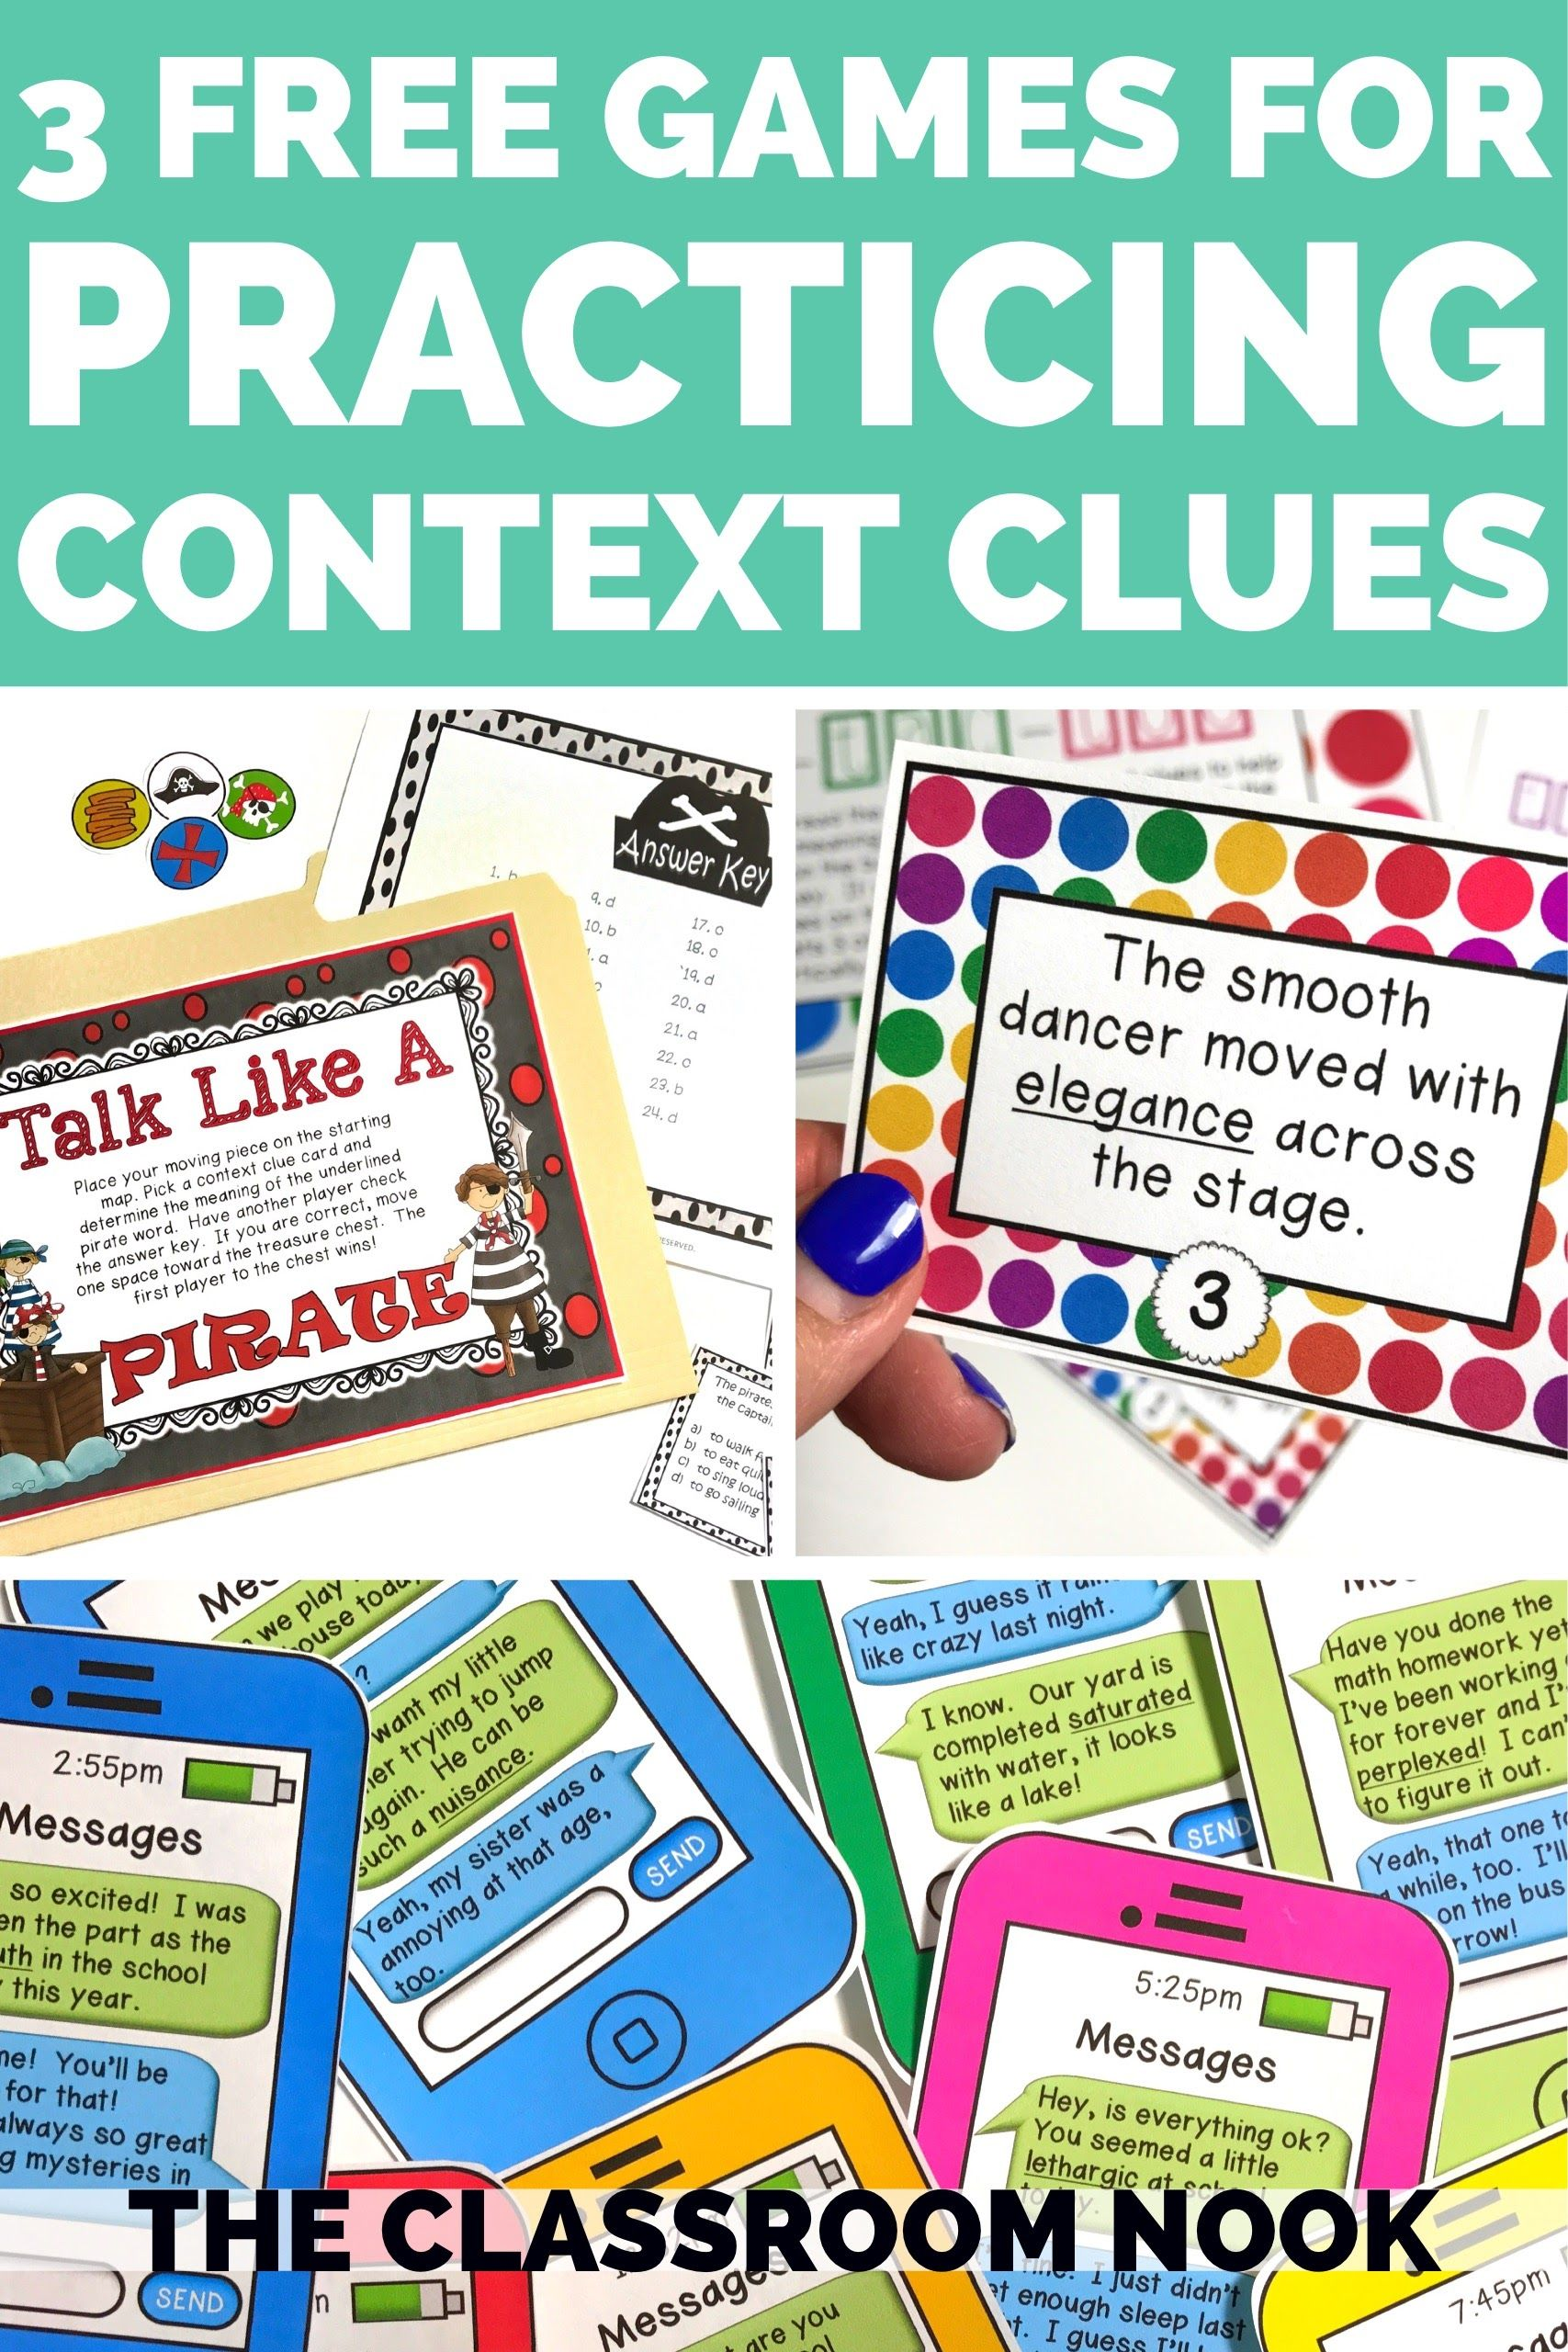 Teacher S Toolkit 3 Free Games To Help Students Practice Using Context Clues Context Clues Worksheets Context Clues Reading Comprehension Games [ 2560 x 1707 Pixel ]